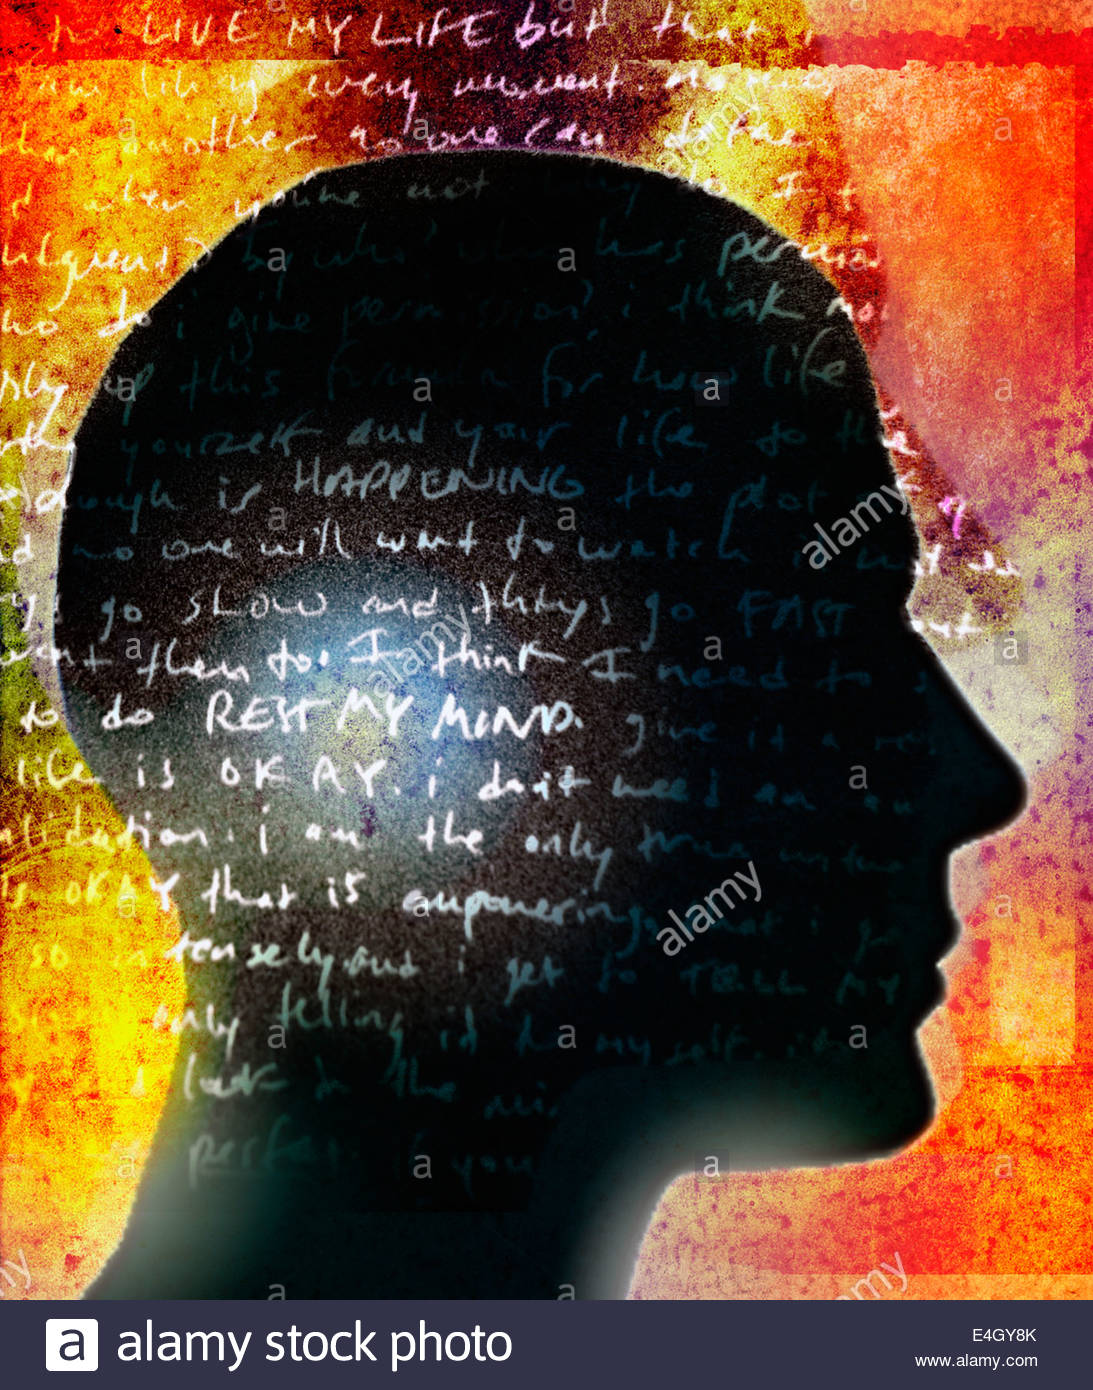 Handwritten text over silhouette profile of man's head - Stock Image